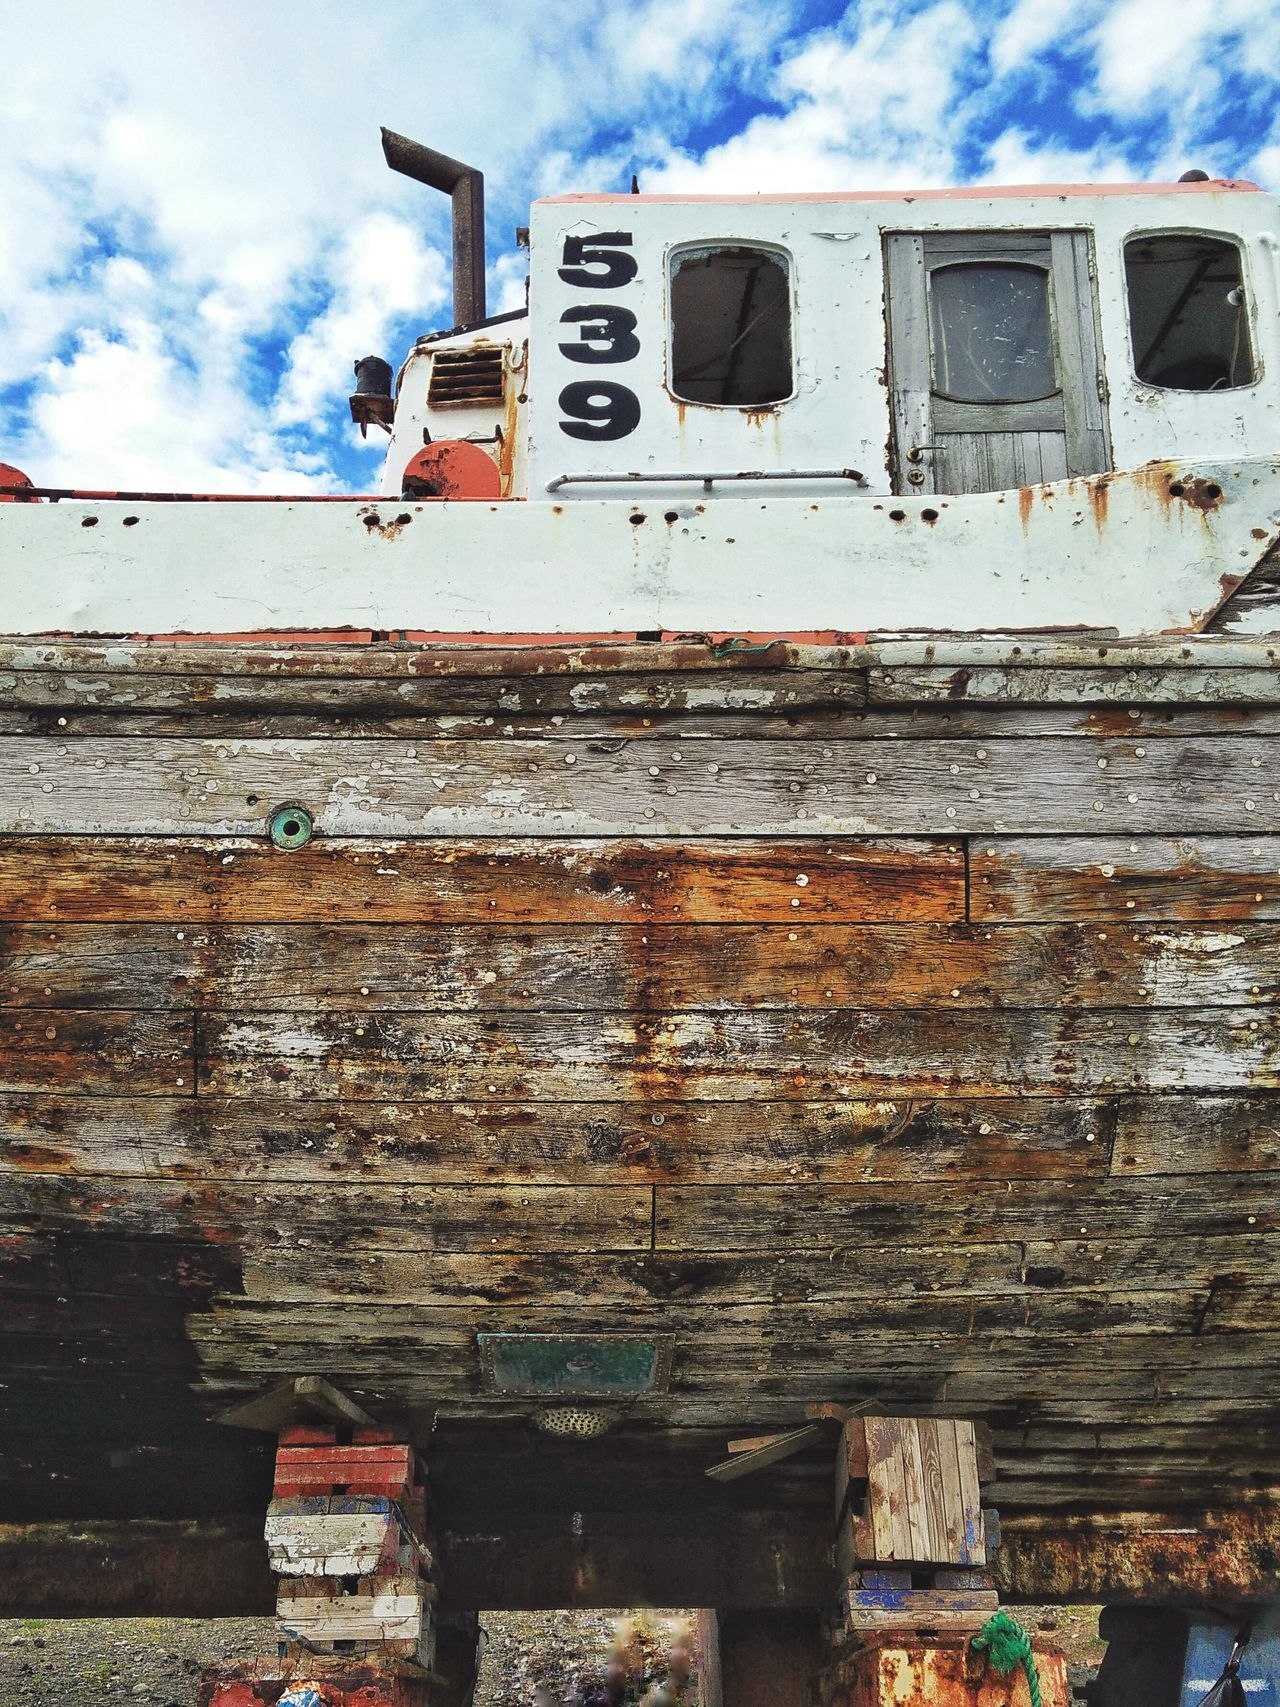 Cloud - Sky Sky Mode Of Transport Outdoors Low Angle View Transportation Day No People Land Vehicle Freight Transportation Nature Boat Old Boat Wooden Boat Wooden Hull Iceland Reykjavik